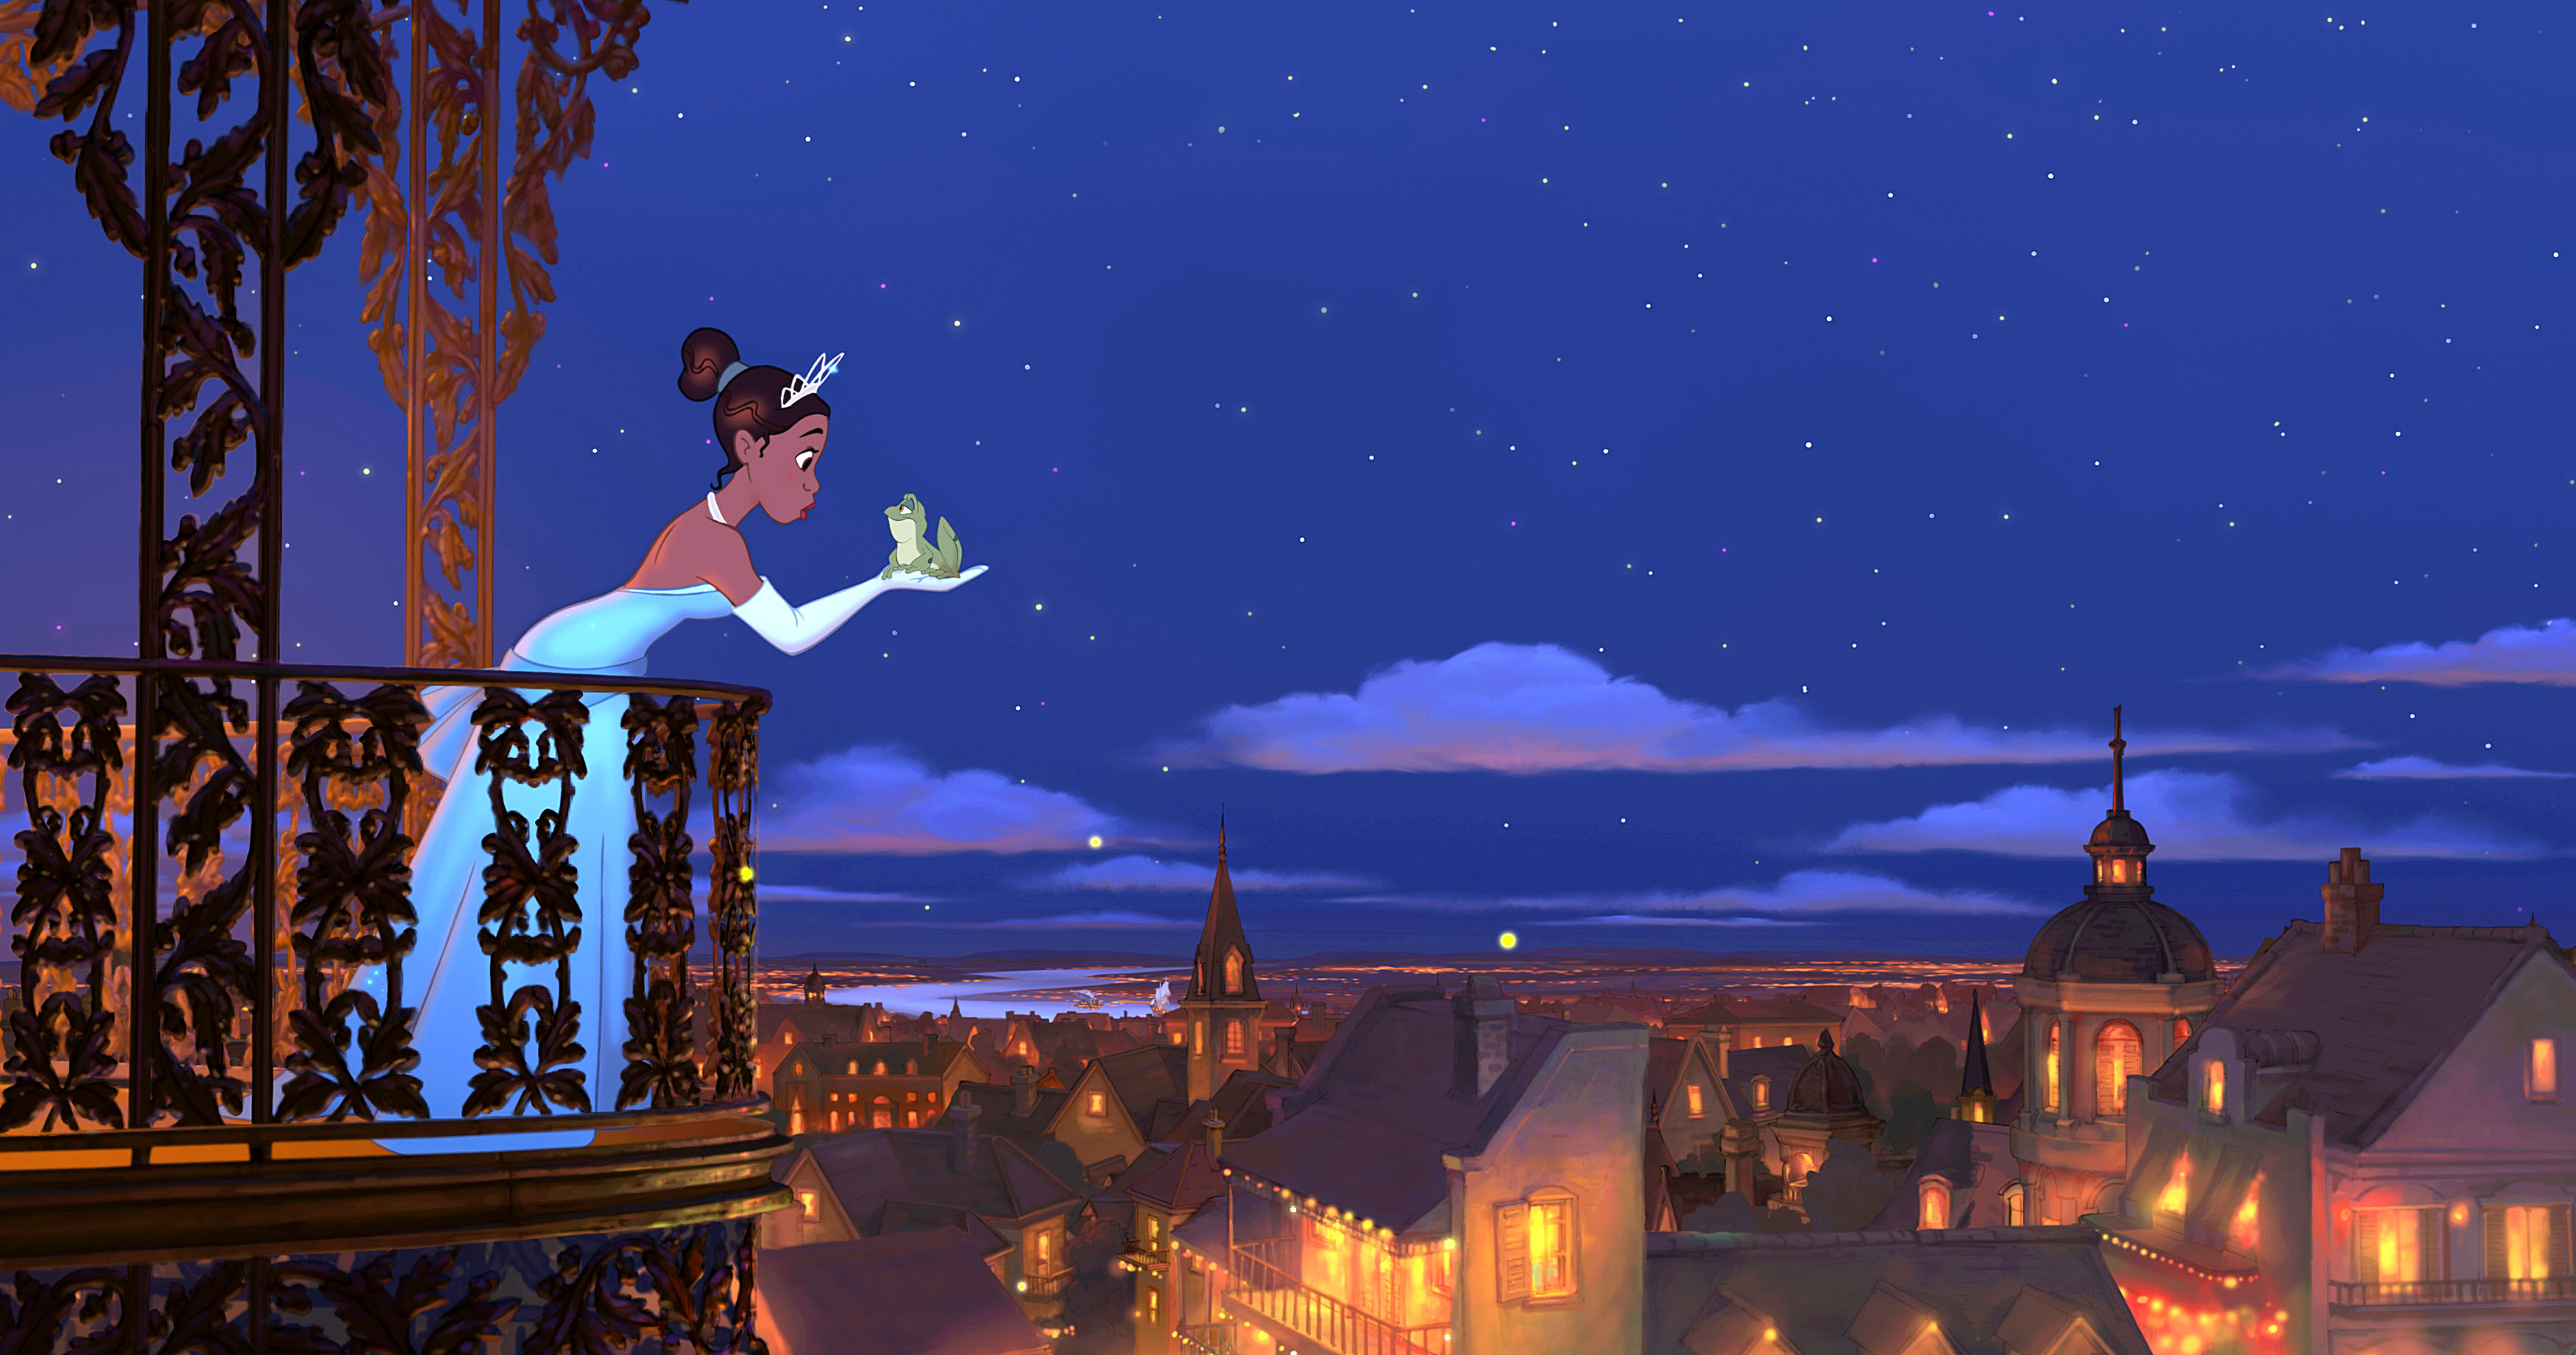 The Princess And The Frog Gave Black Girls Their First Taste Of